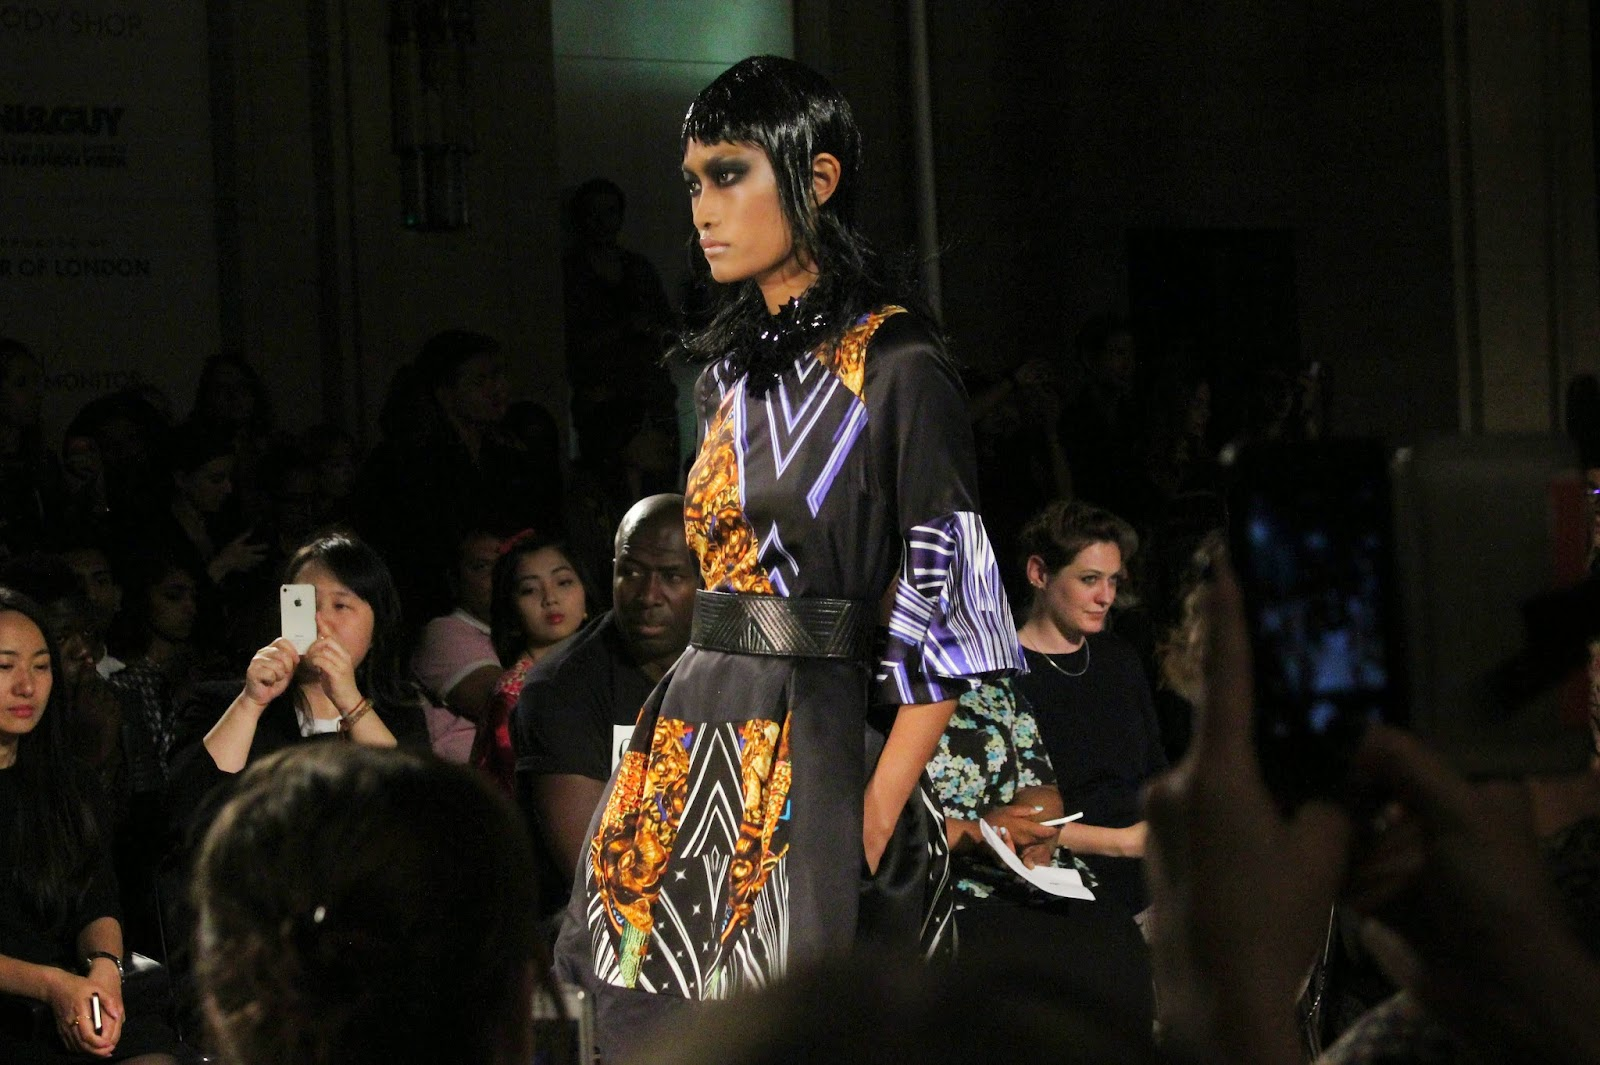 london-fashion-week-2014-lfw-spring-summer-2015-blogger-fashion-Dora-Abodi-catwalk-models-freemasons hall-fashion-scout-dress-belt